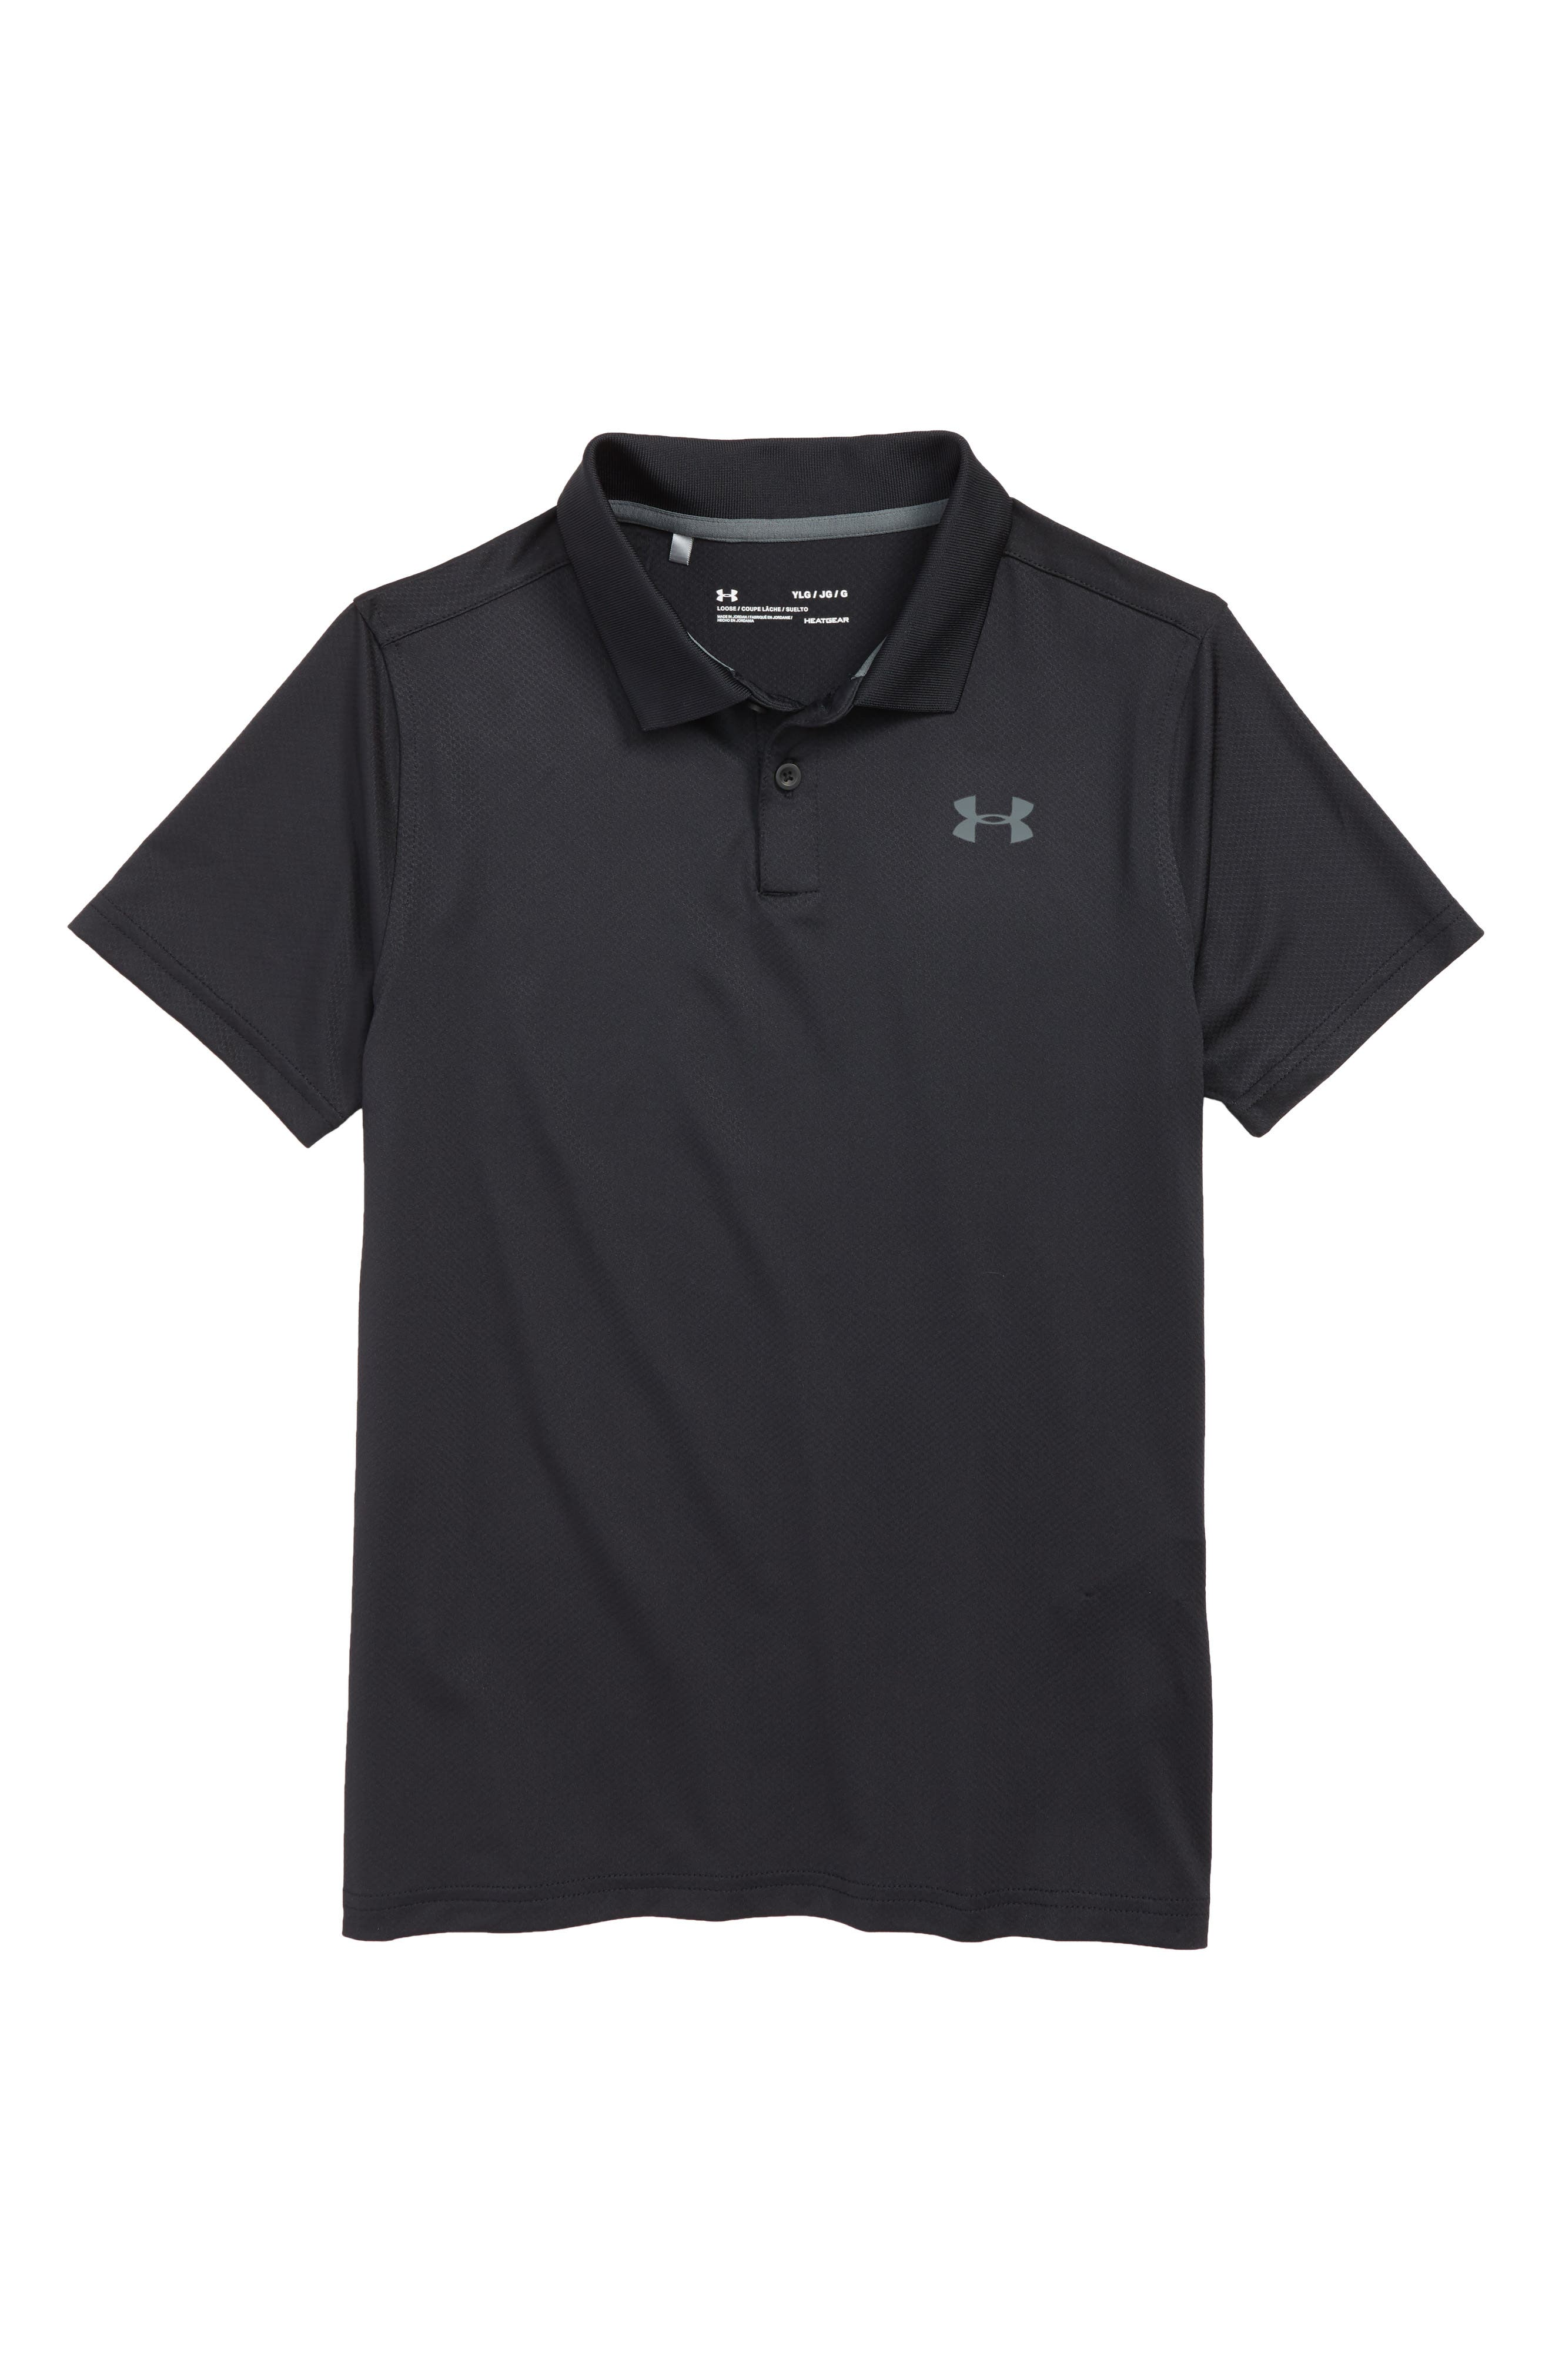 Boys Under Armour Heatgear Performance Polo